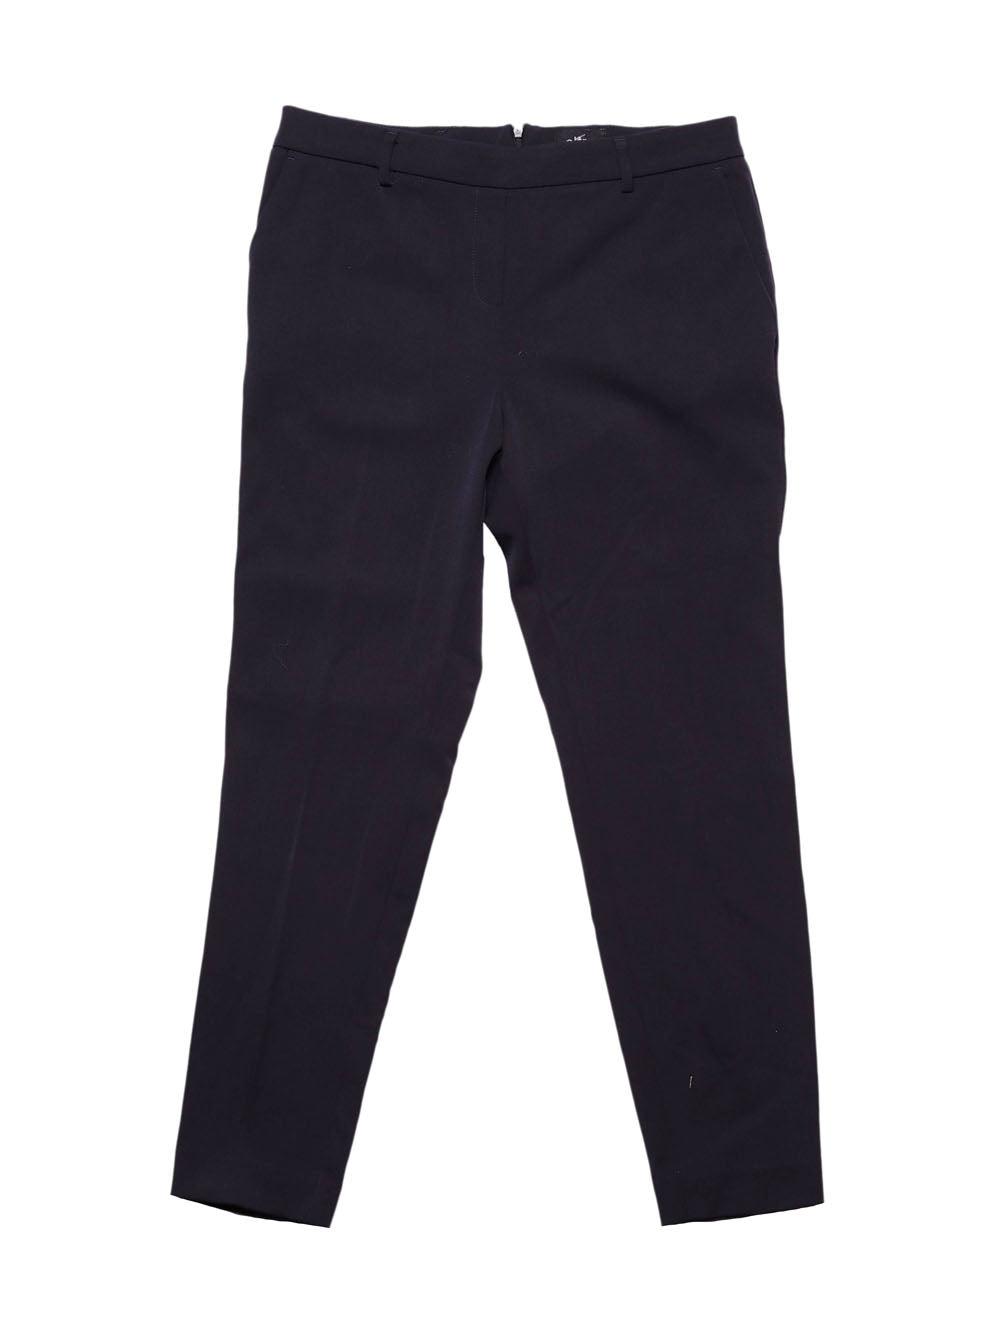 Front photo of Preloved Oltre Black Woman's trousers - size 10/M